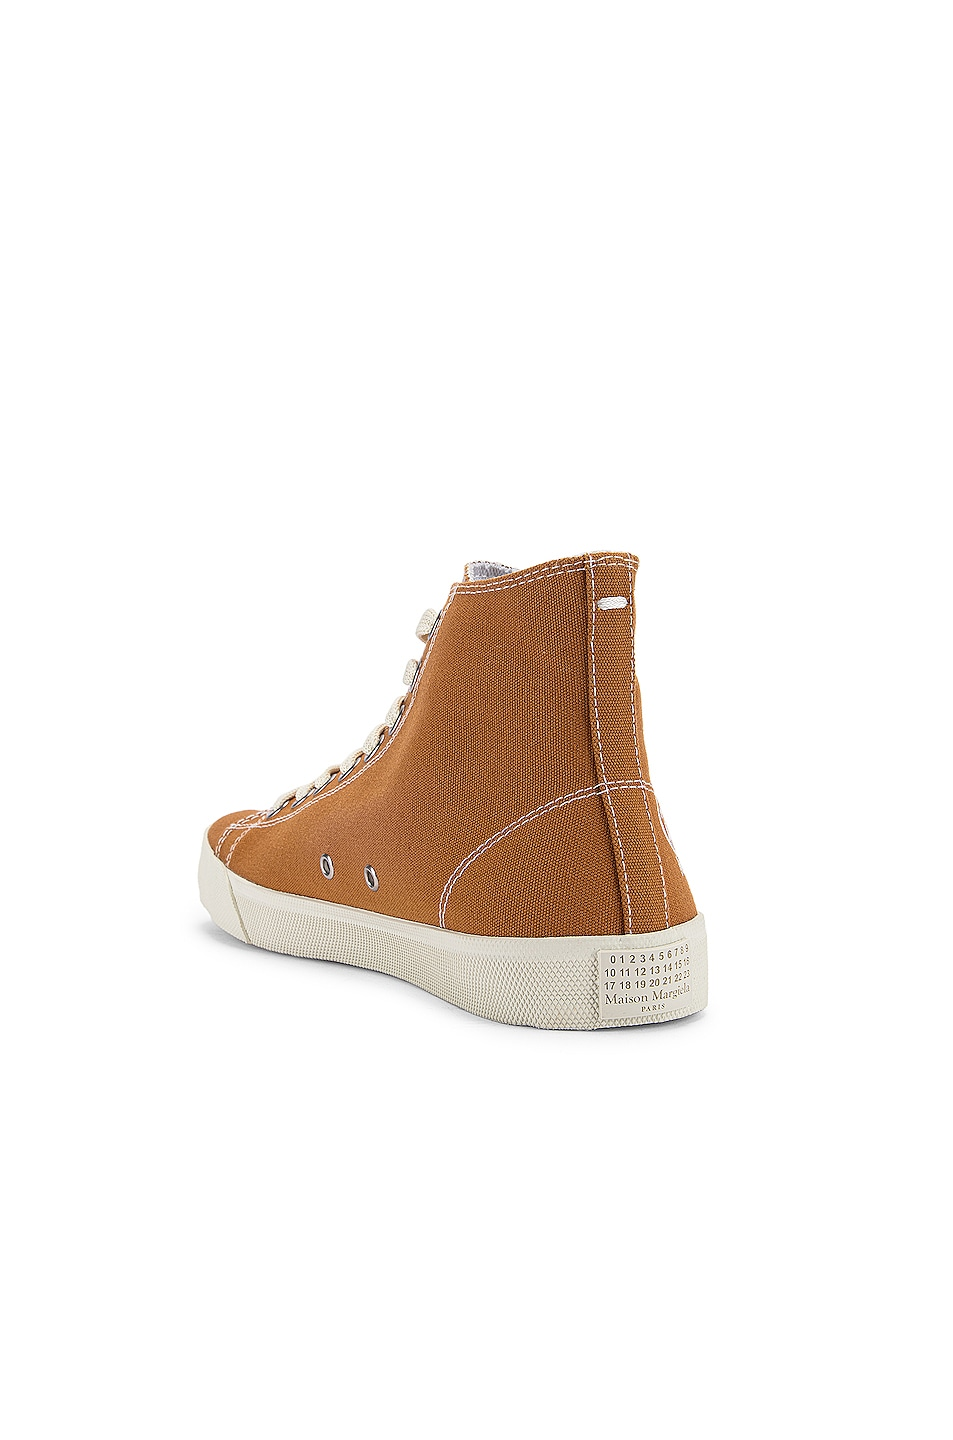 Image 4 of Maison Margiela Tabi High Top Canvas Sneakers in Nude